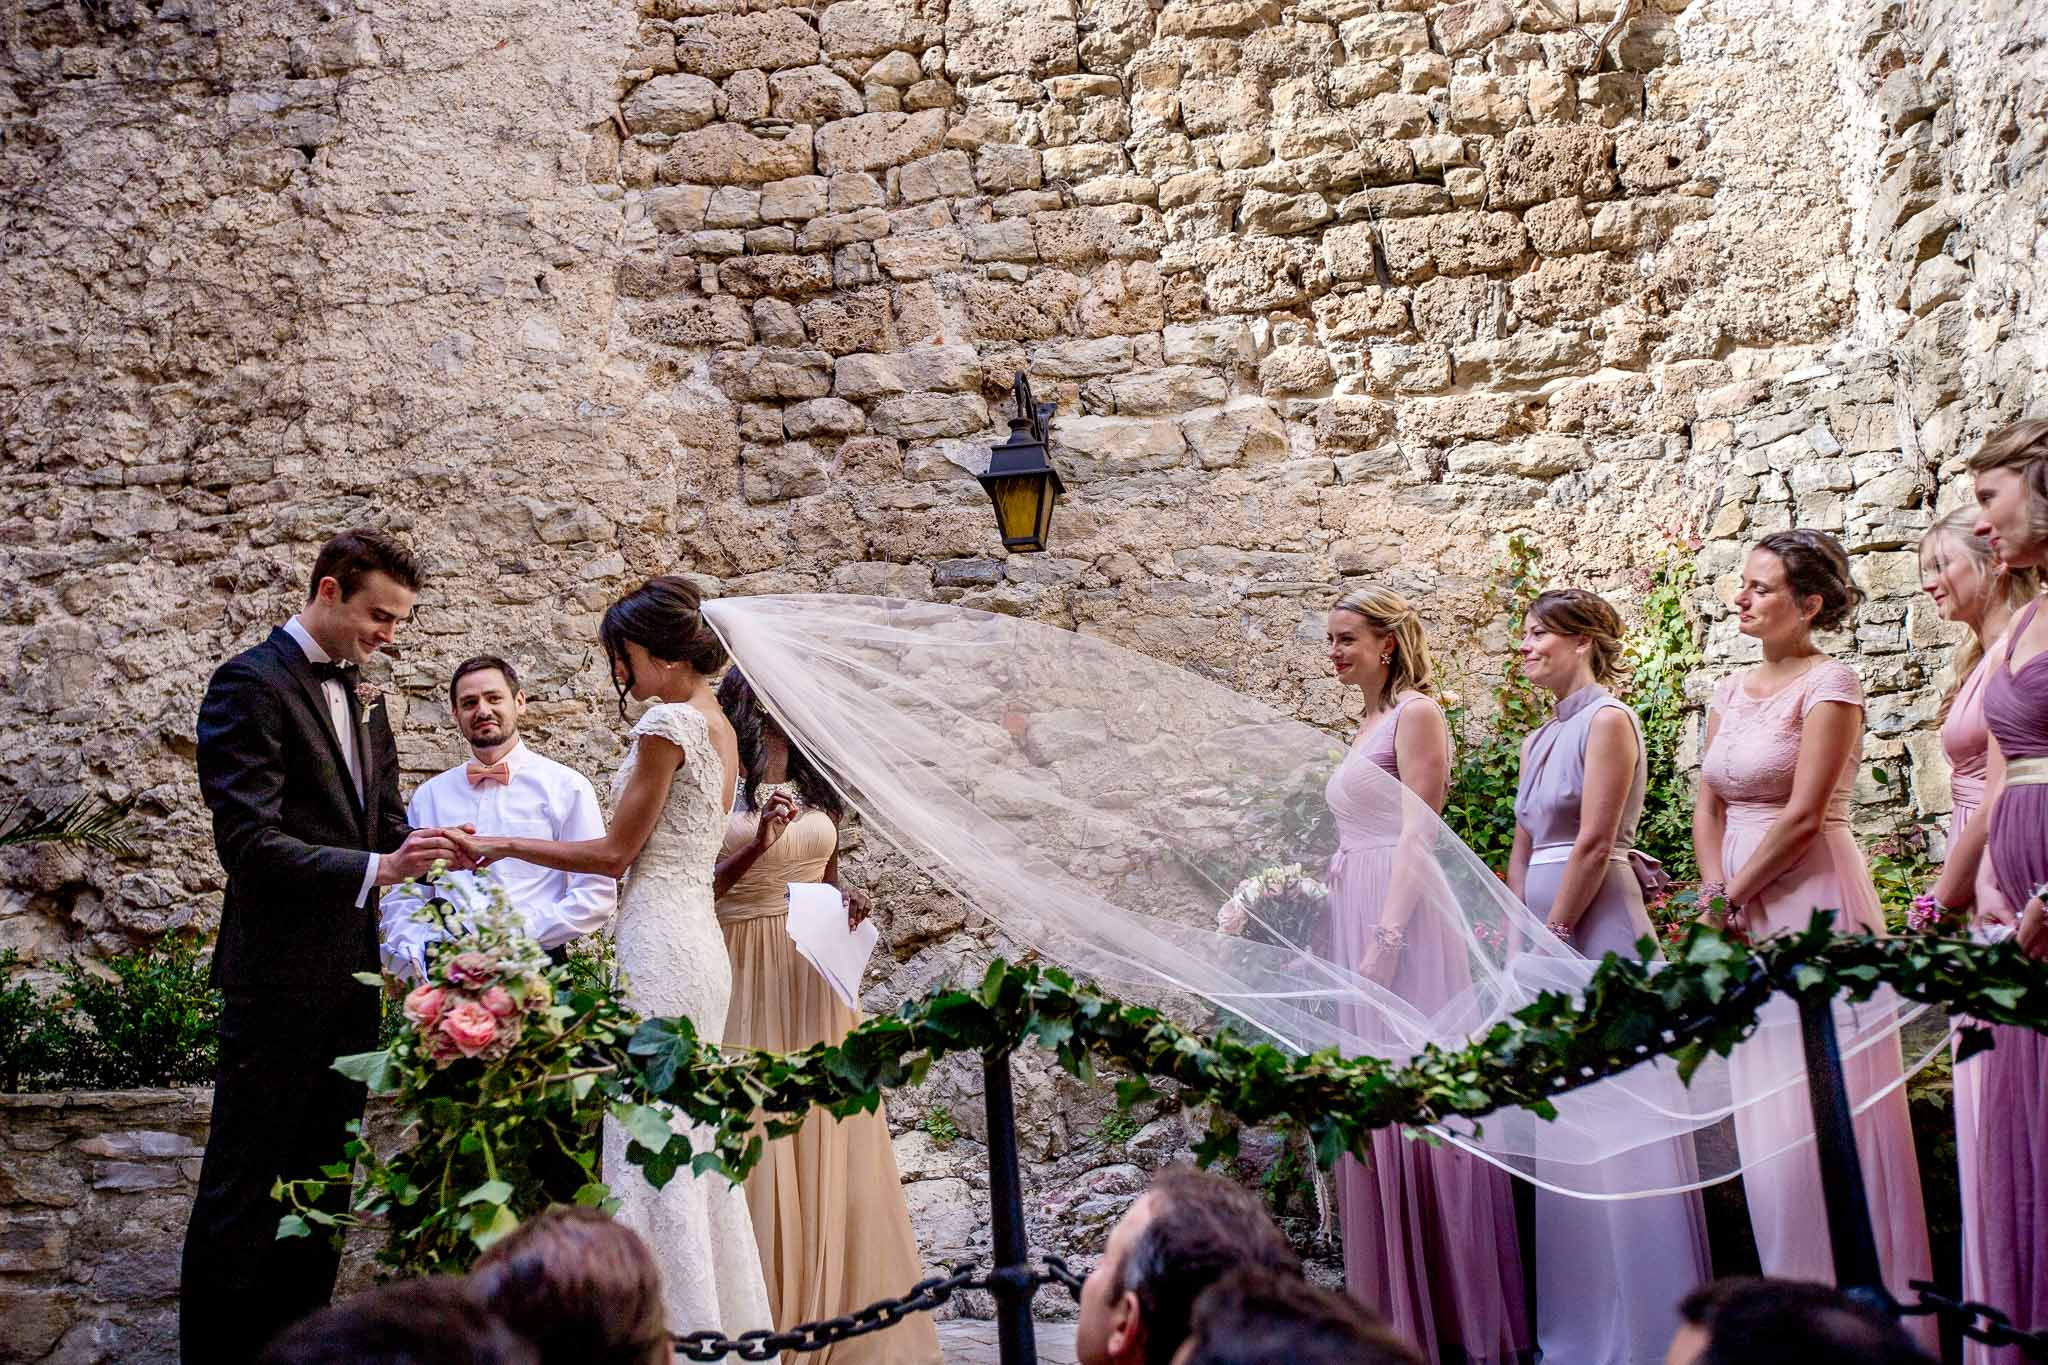 Exchanging rings during wedding ceremony in Cirque de Navacelles outside Montpellier France